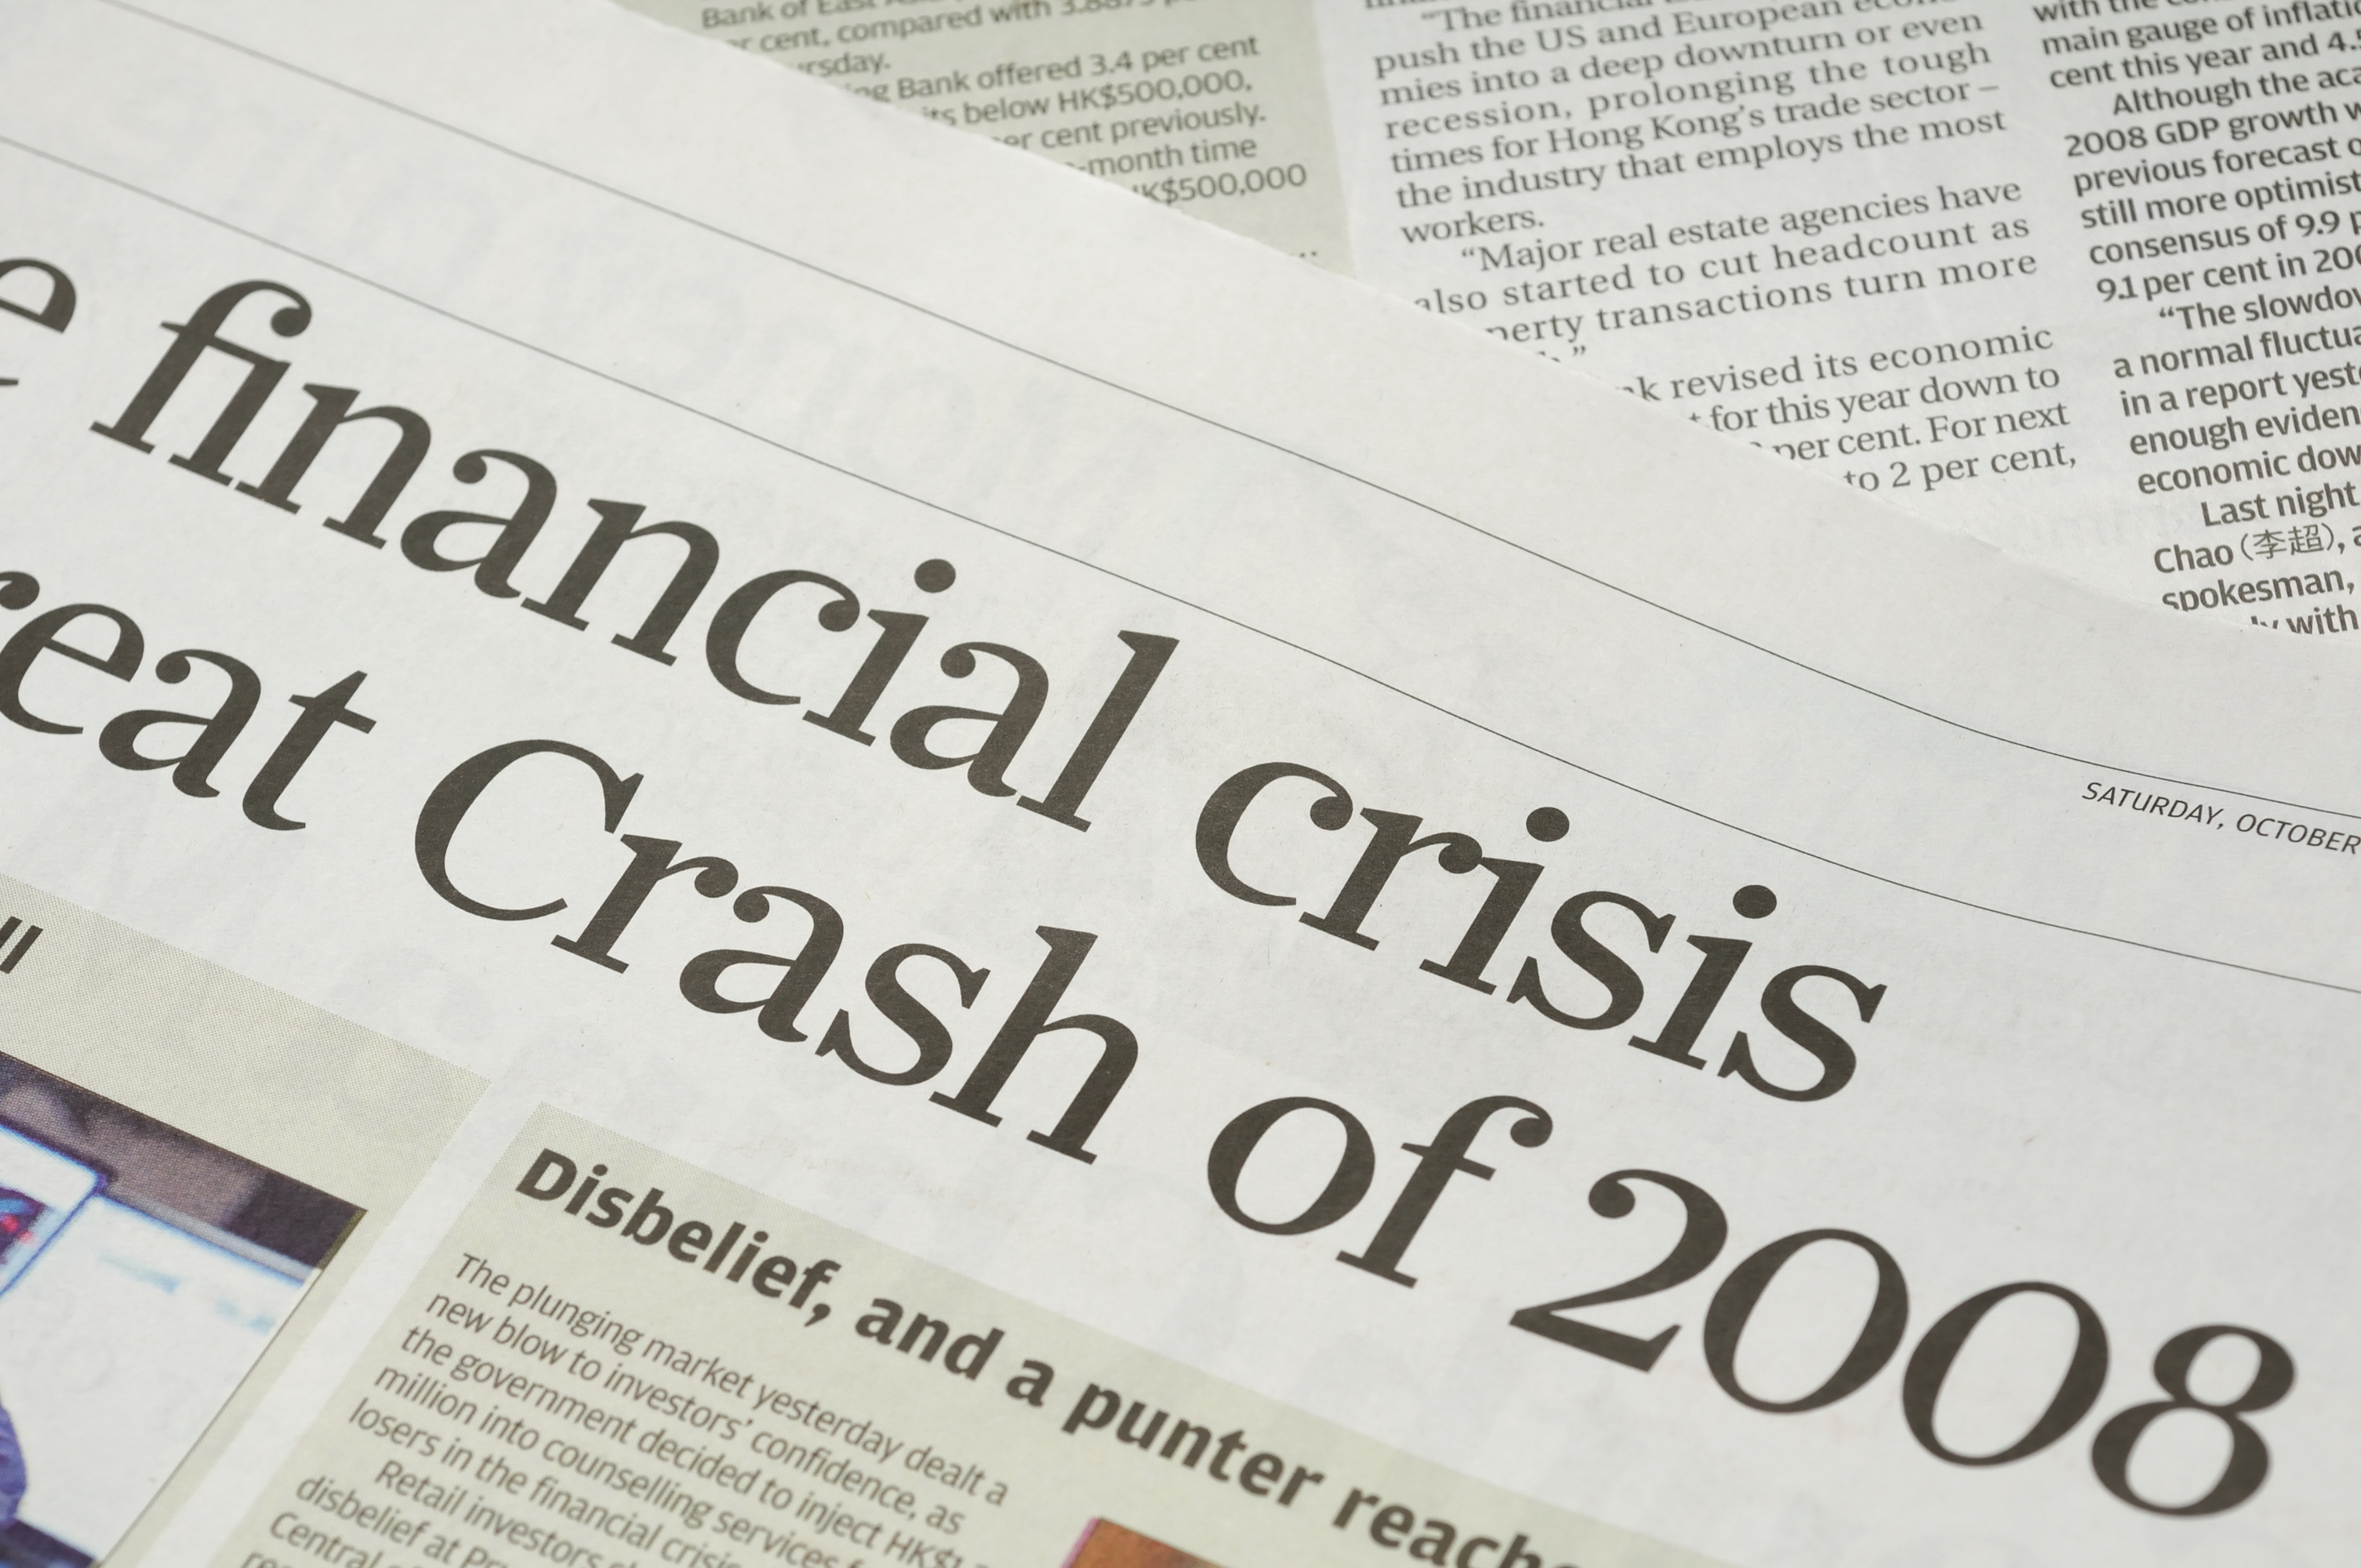 2008financialcrisis